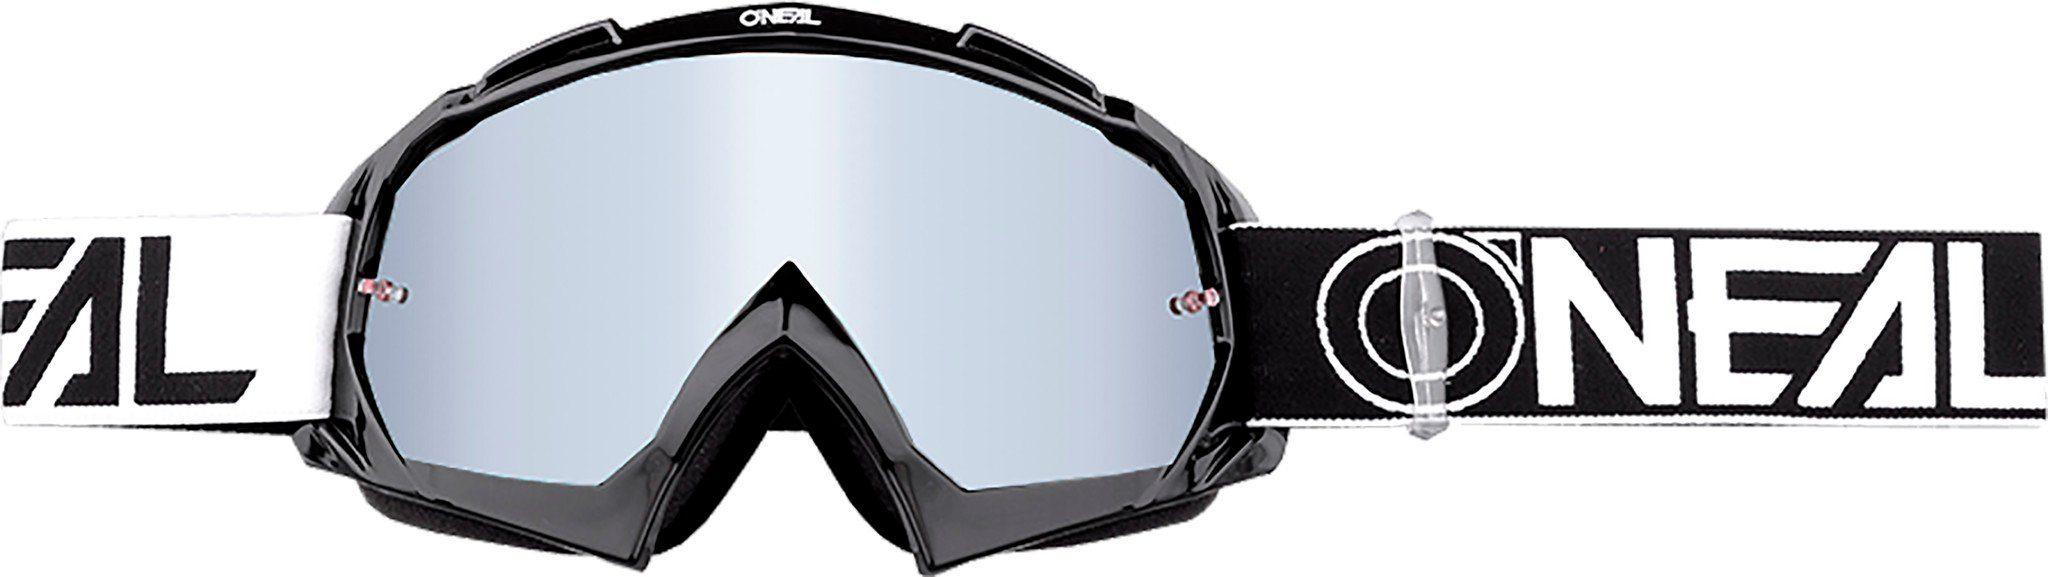 O'NEAL Sportbrille »B-10 Goggle«, rot, rot